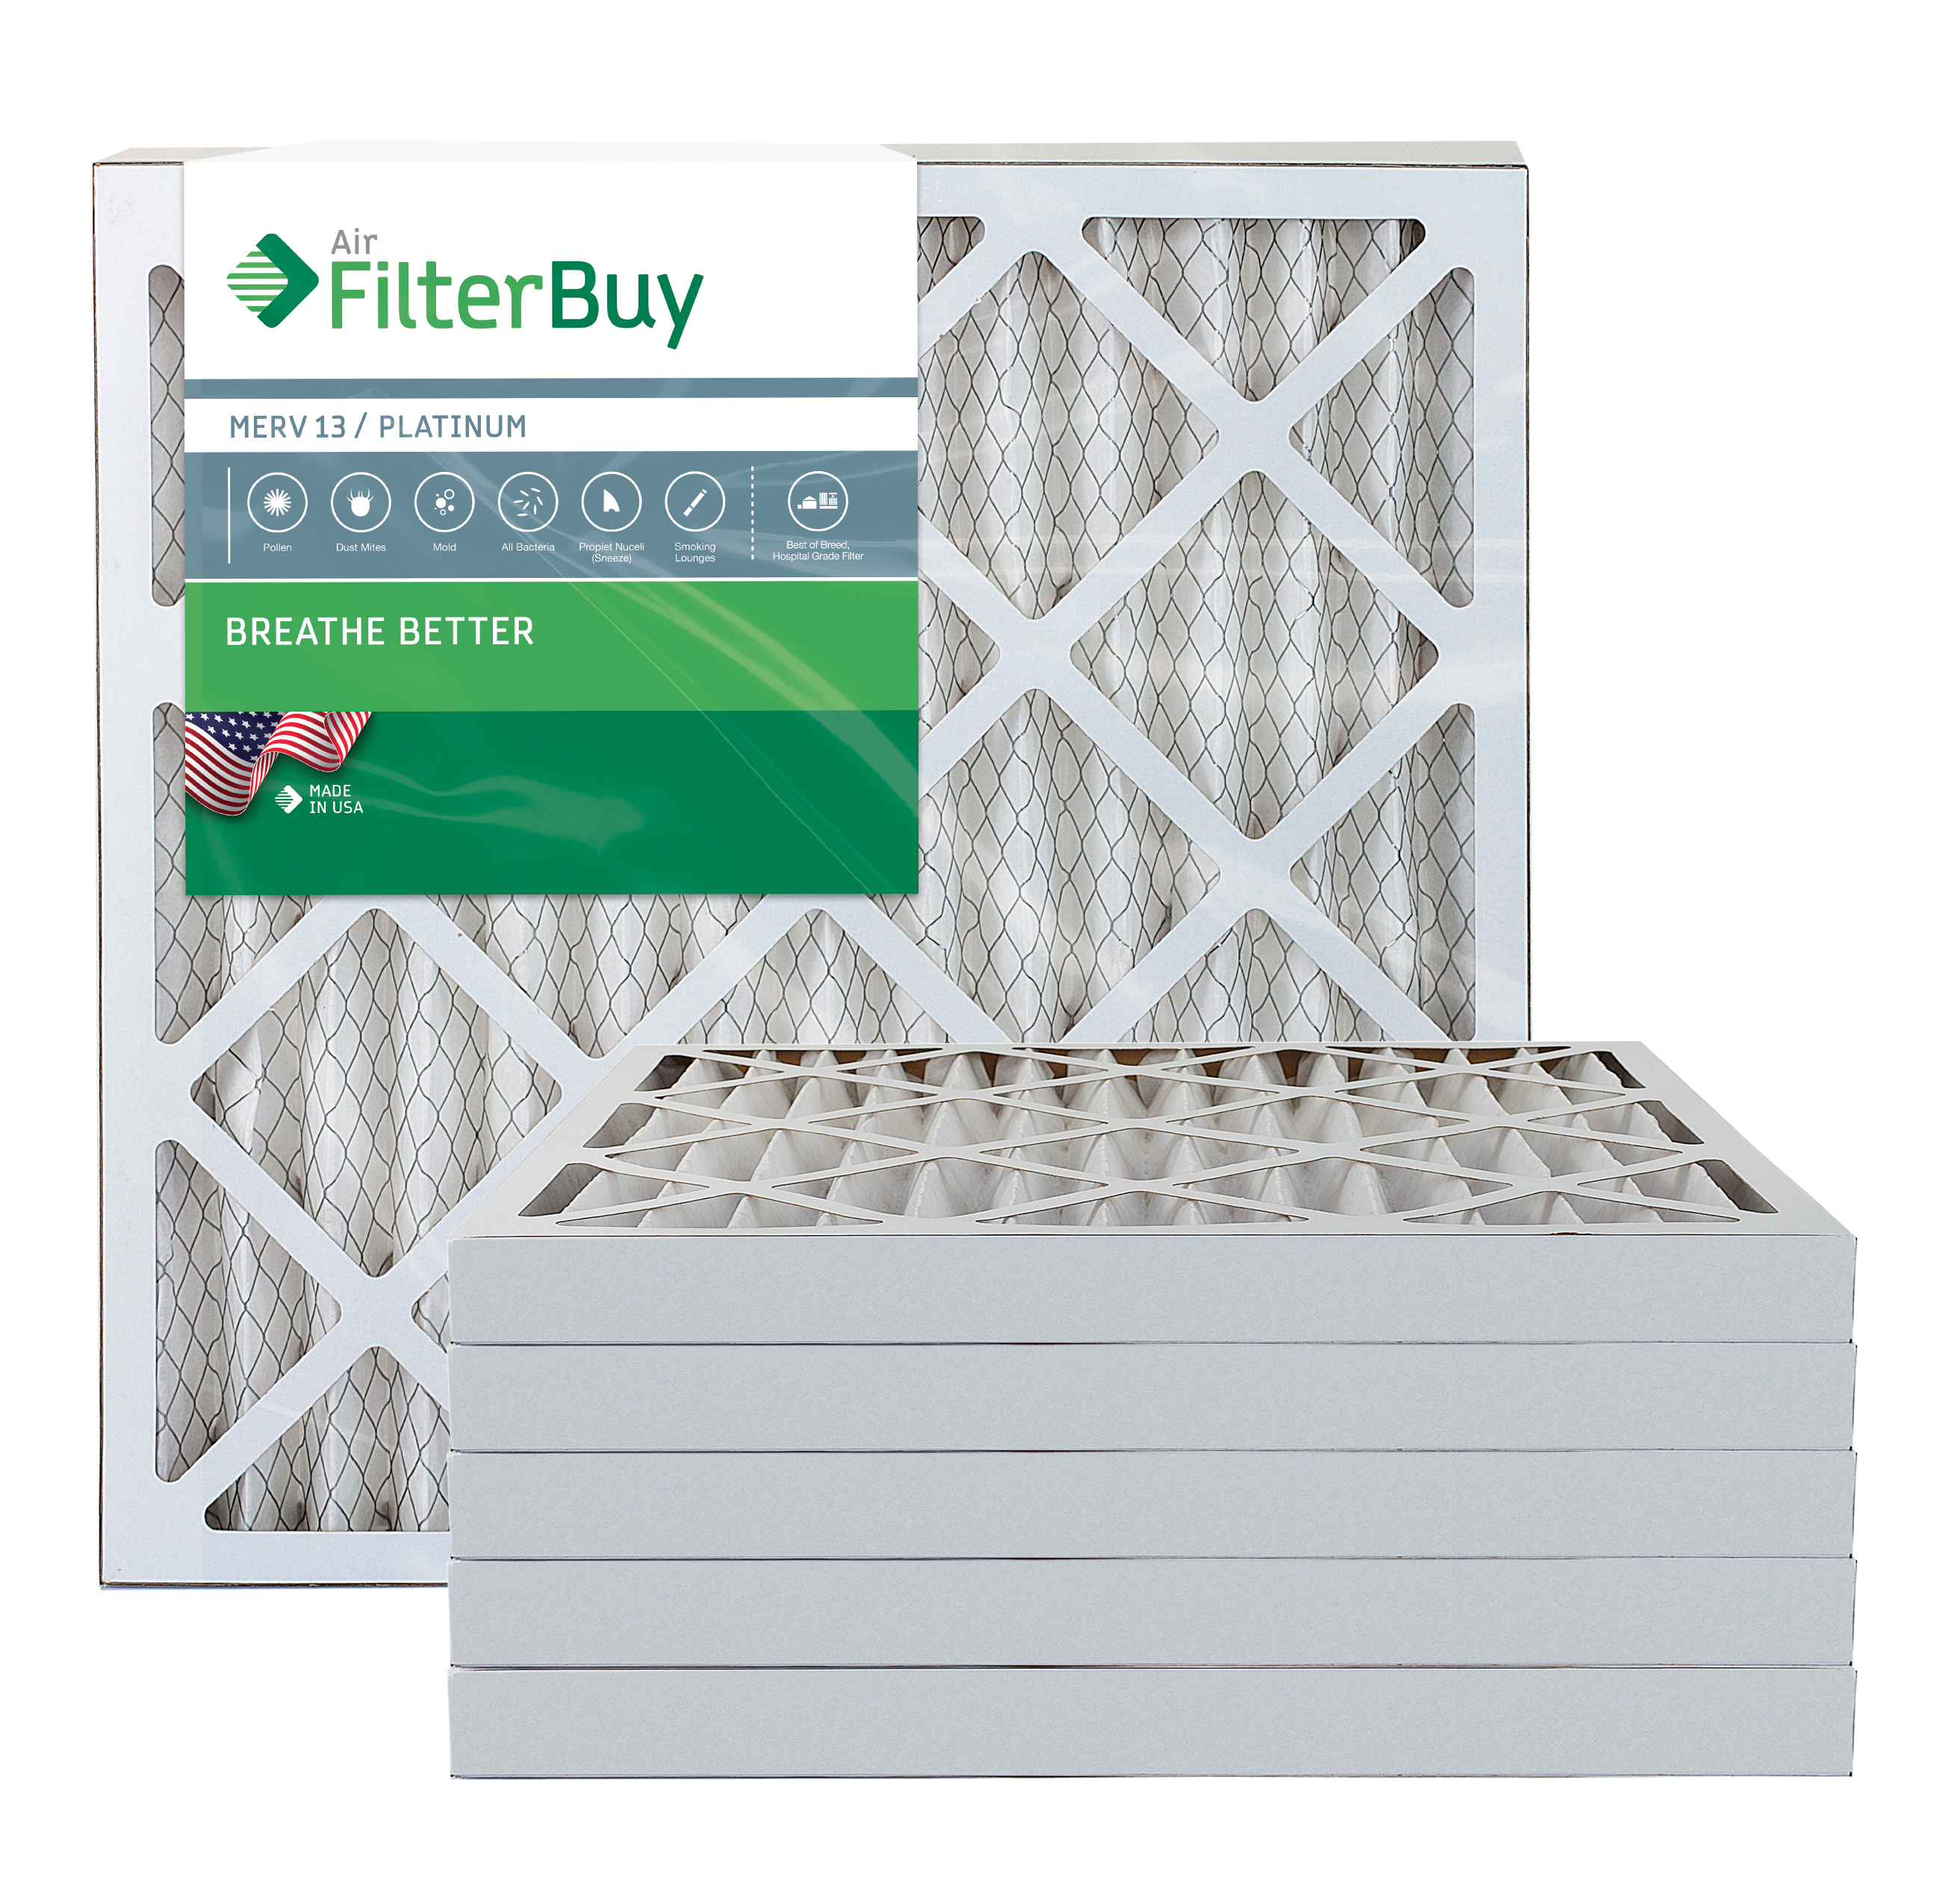 AFB Platinum MERV 13 16x25x4 Pleated AC Furnace Air Filter. Pack of 6 Filters. 100% produced in the USA.